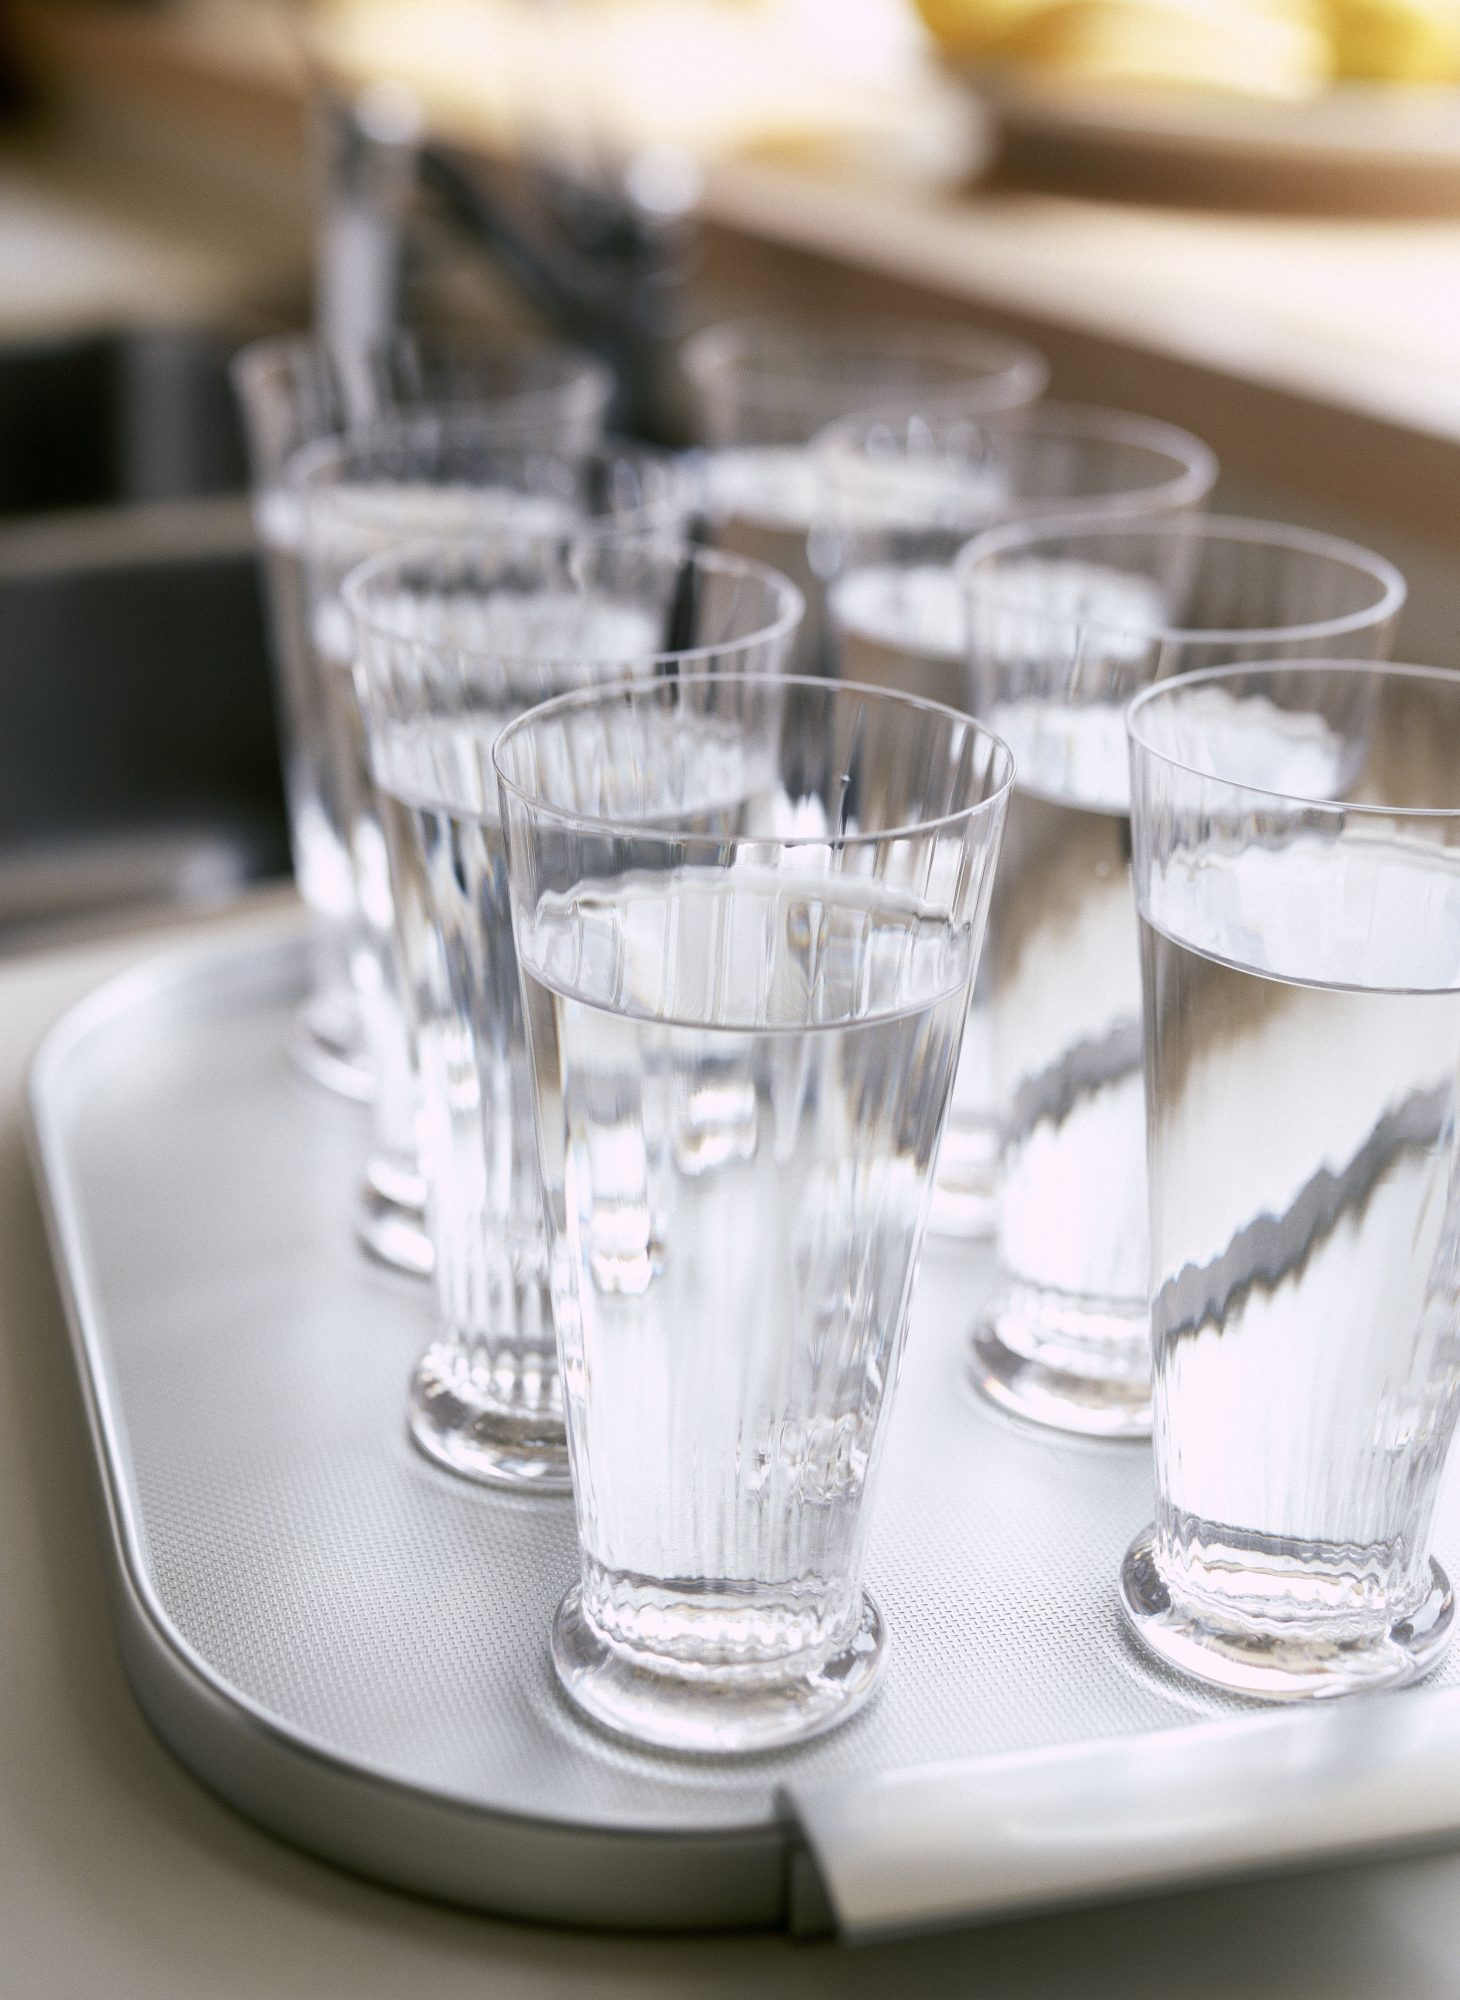 Myth: You need to drink 8 glasses of water a day